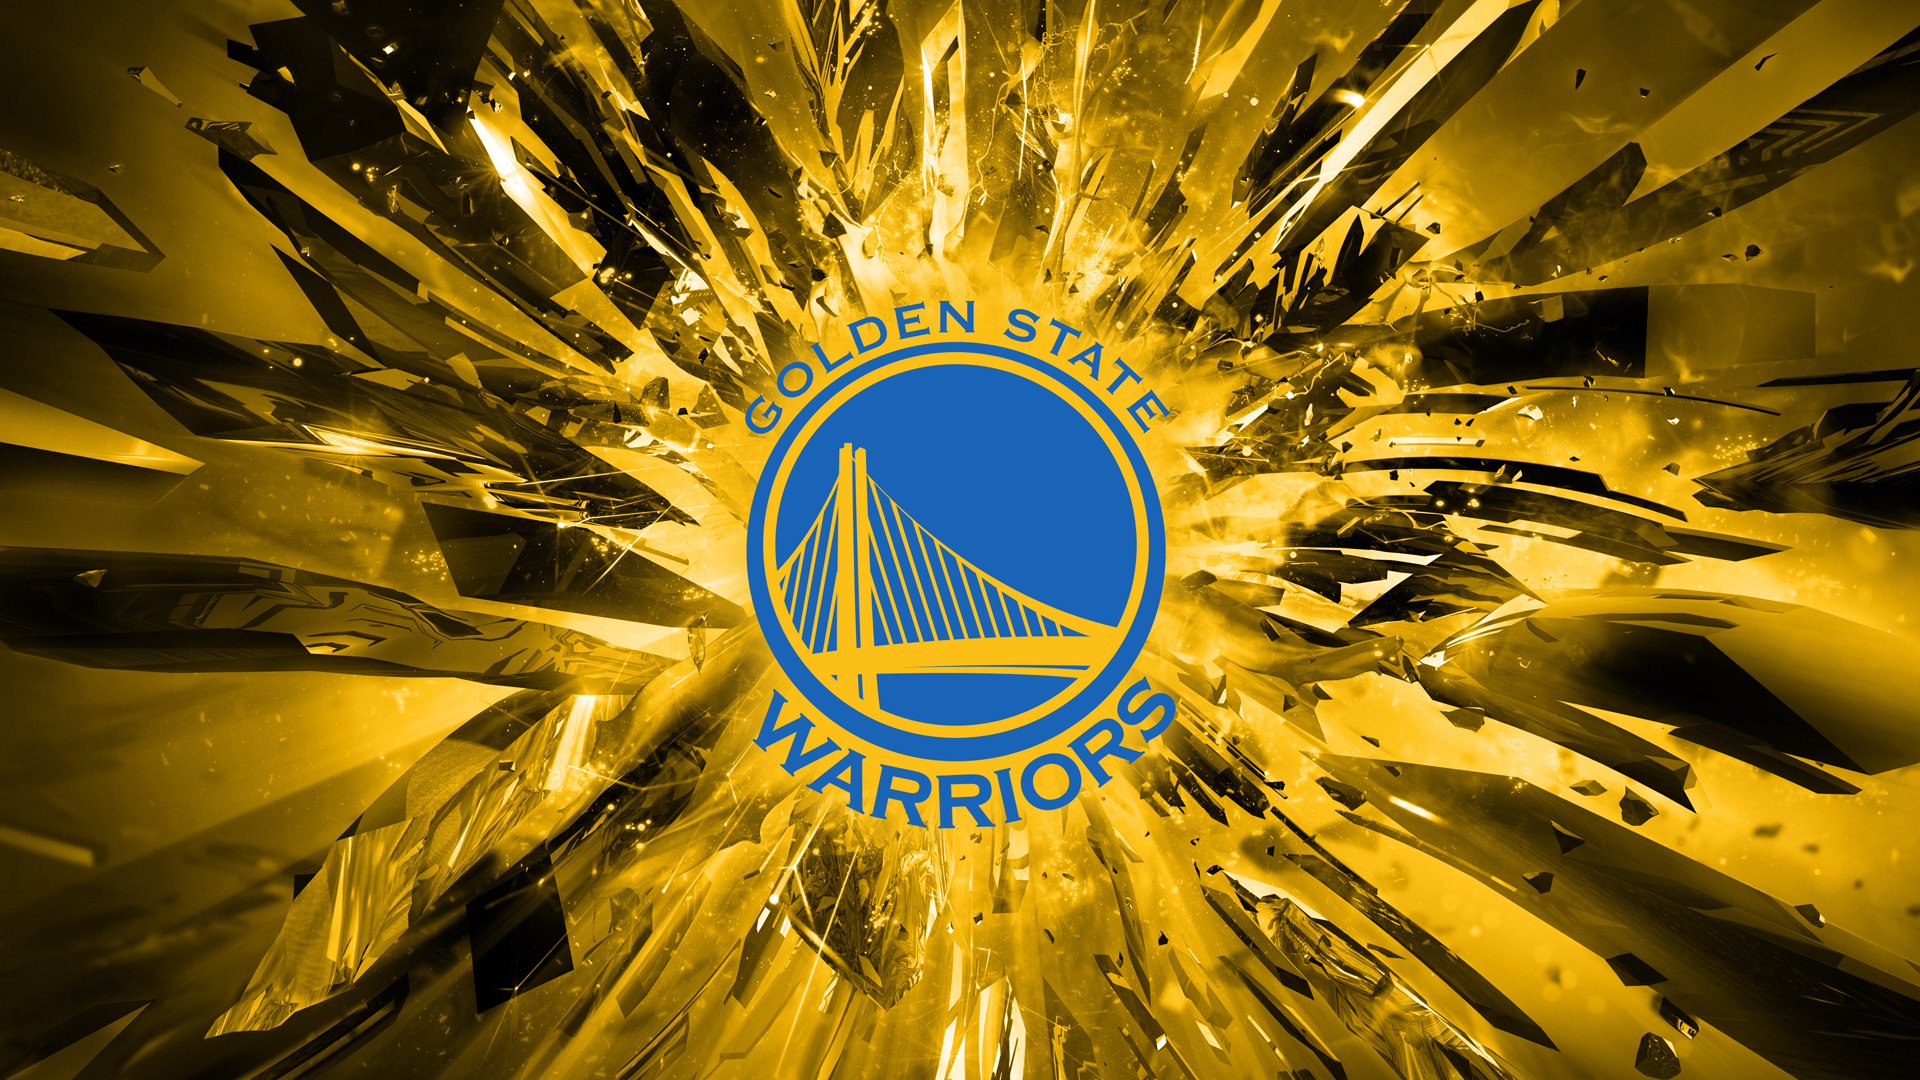 Golden State Warriors Wallpapers Images Photos Pictures